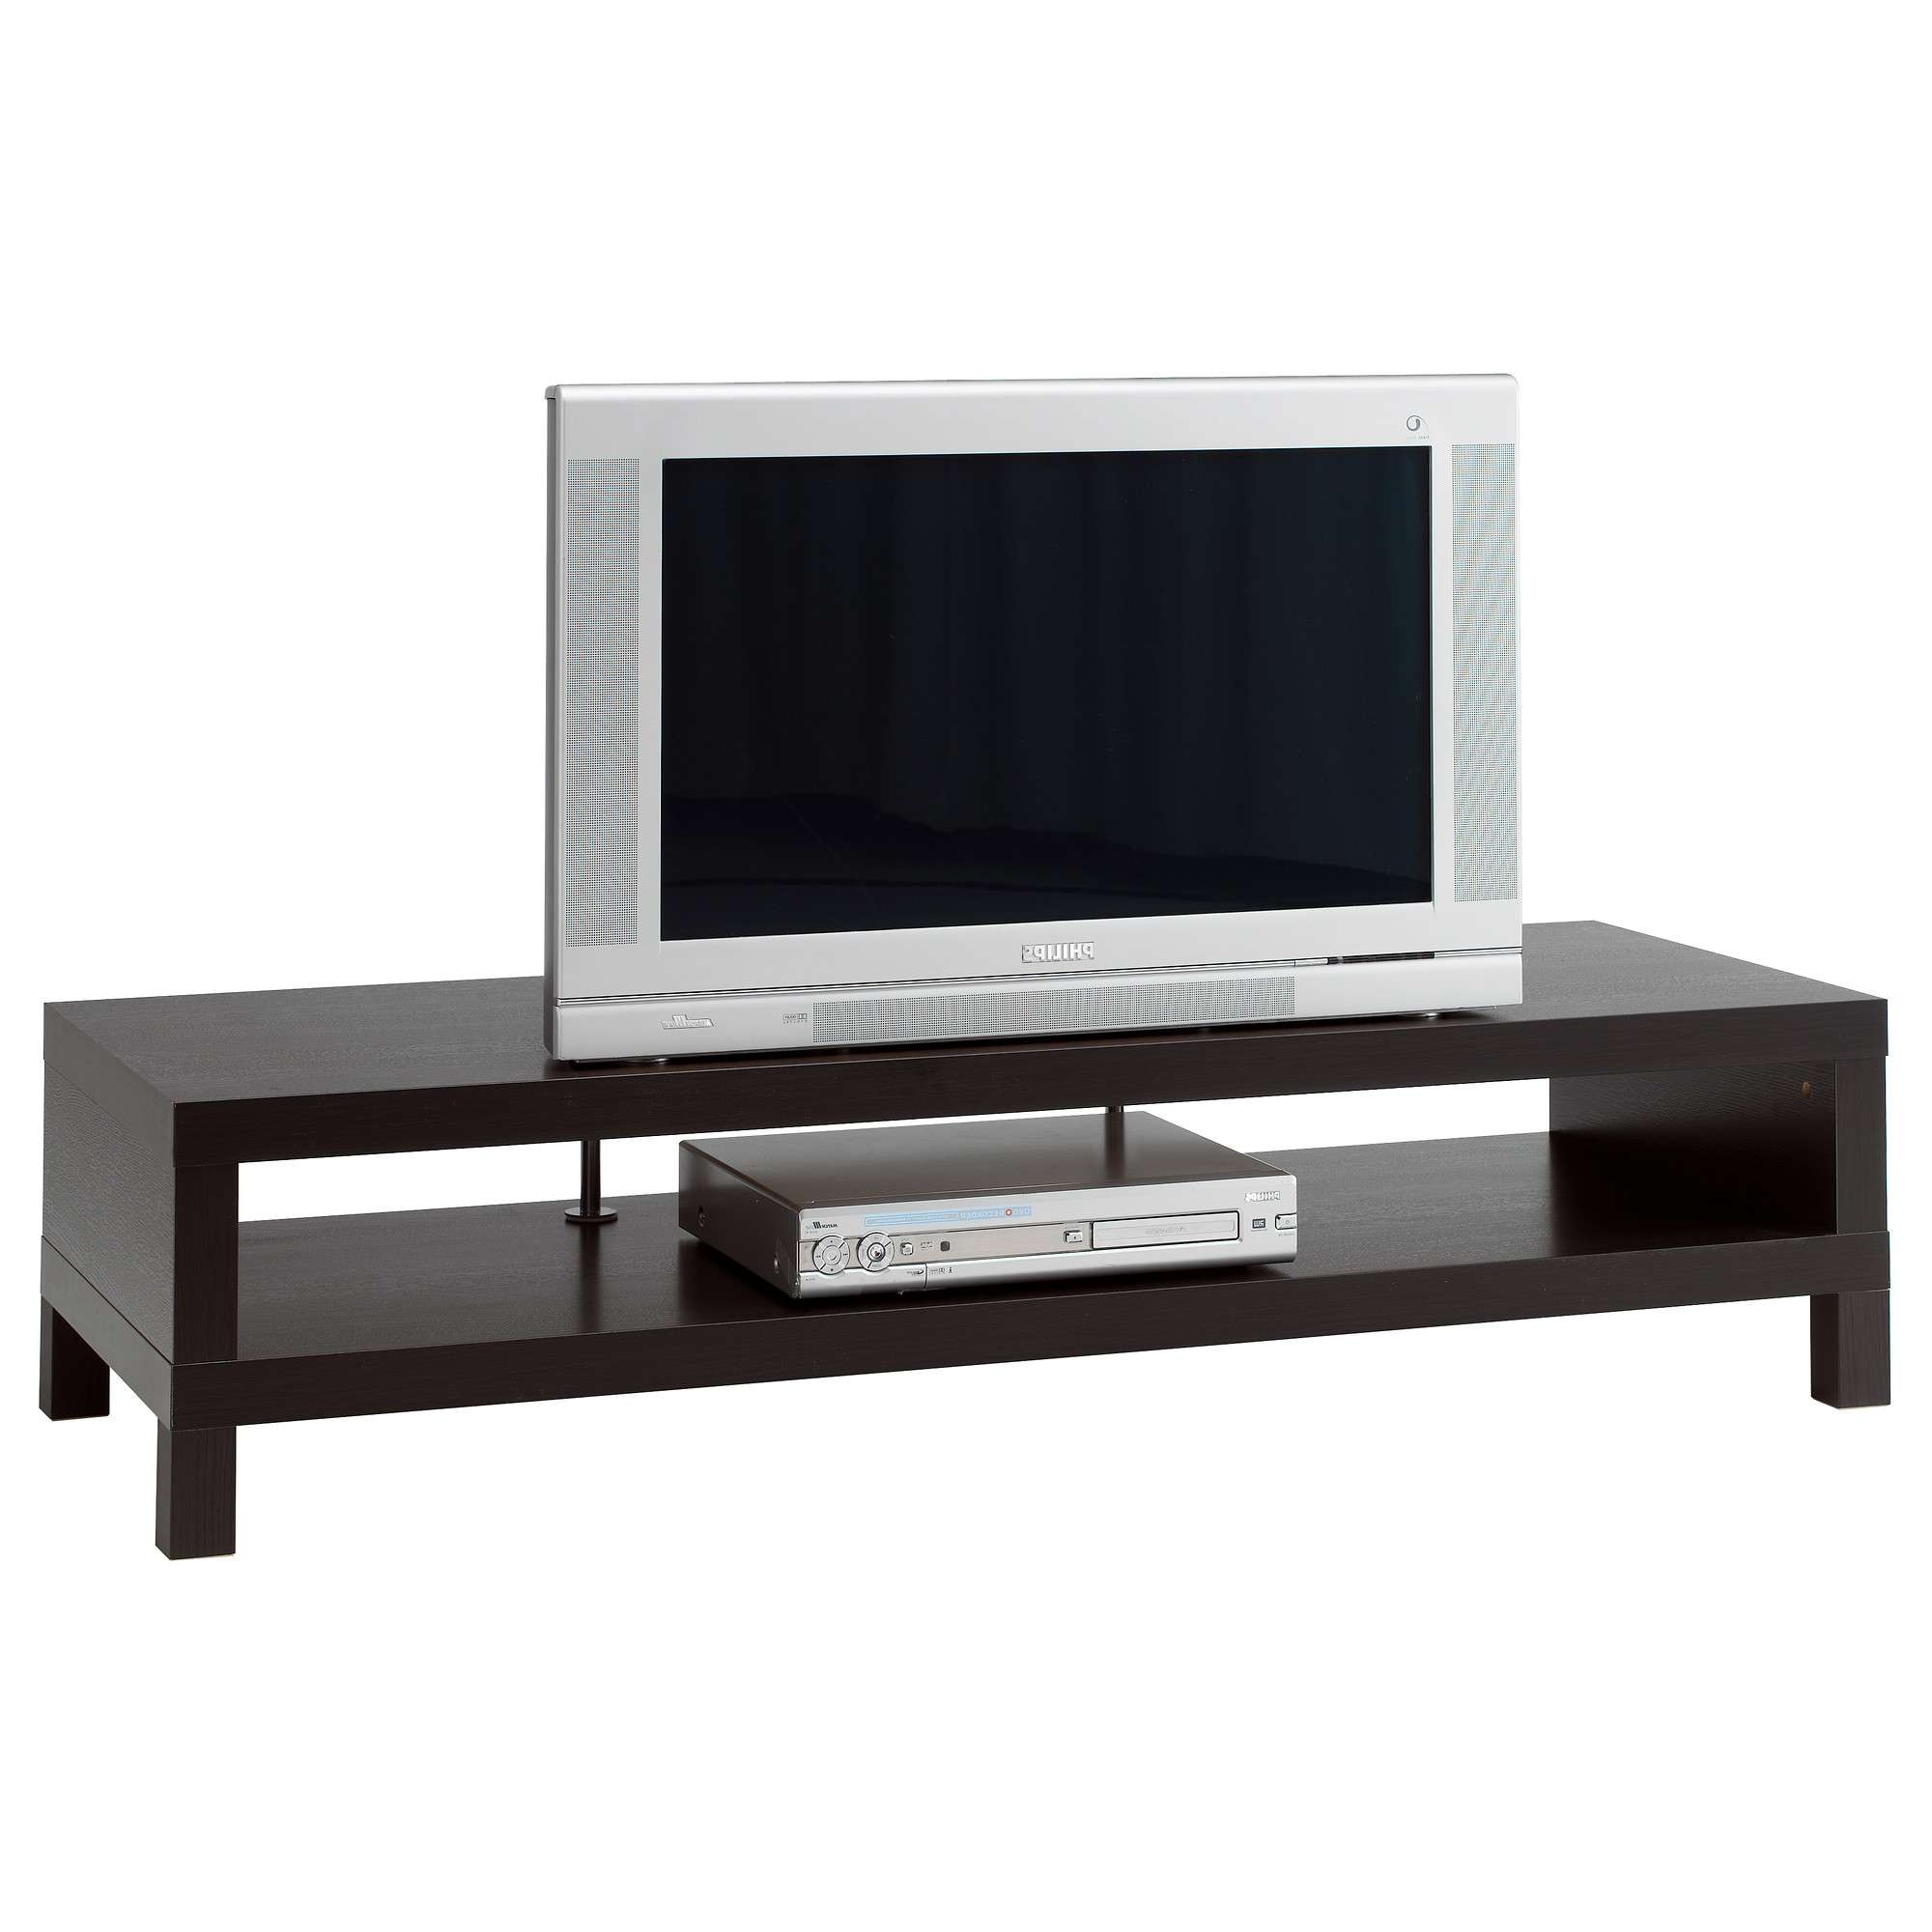 Lack Tv Unit – Ikea With Tv Stands 38 Inches Wide (View 6 of 15)